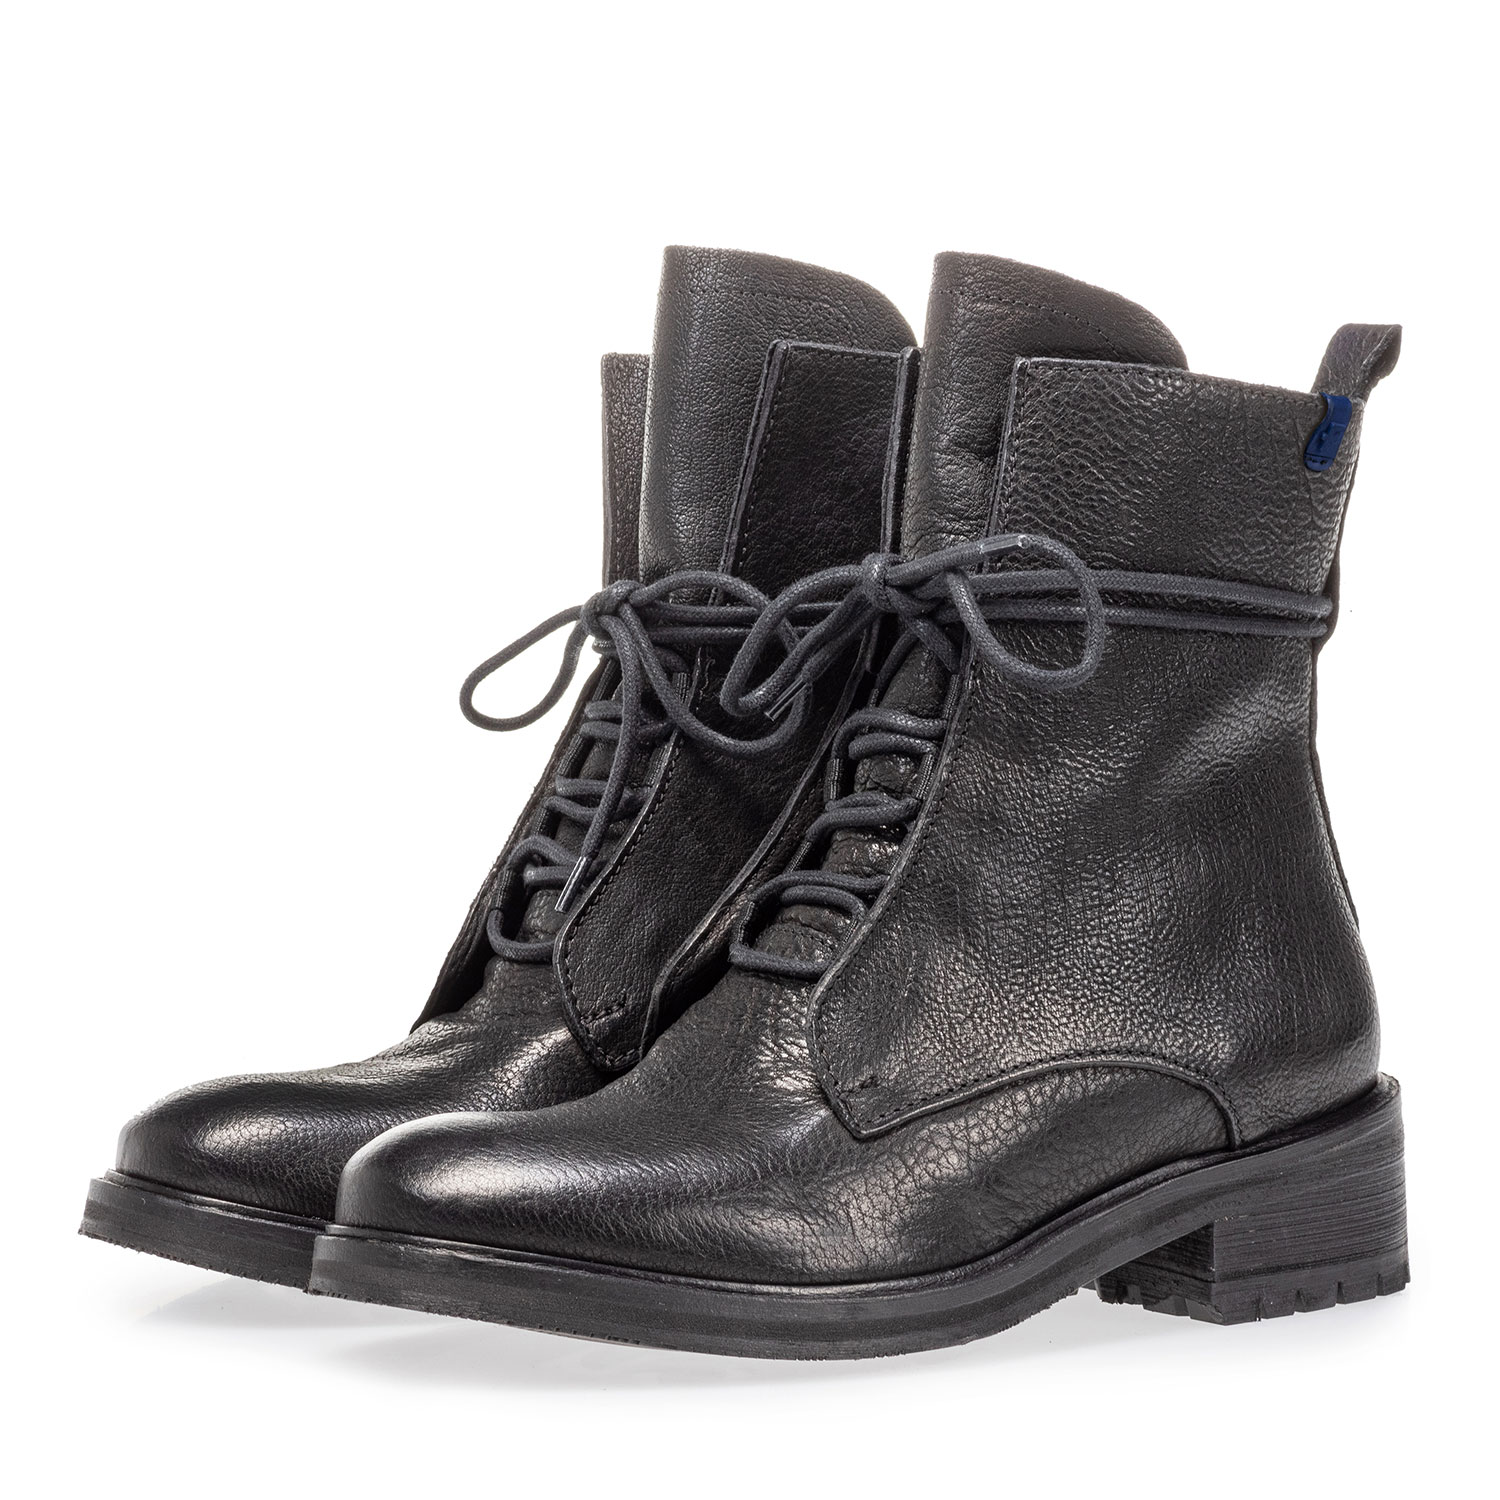 85647/01 - Lace boot calf leather black